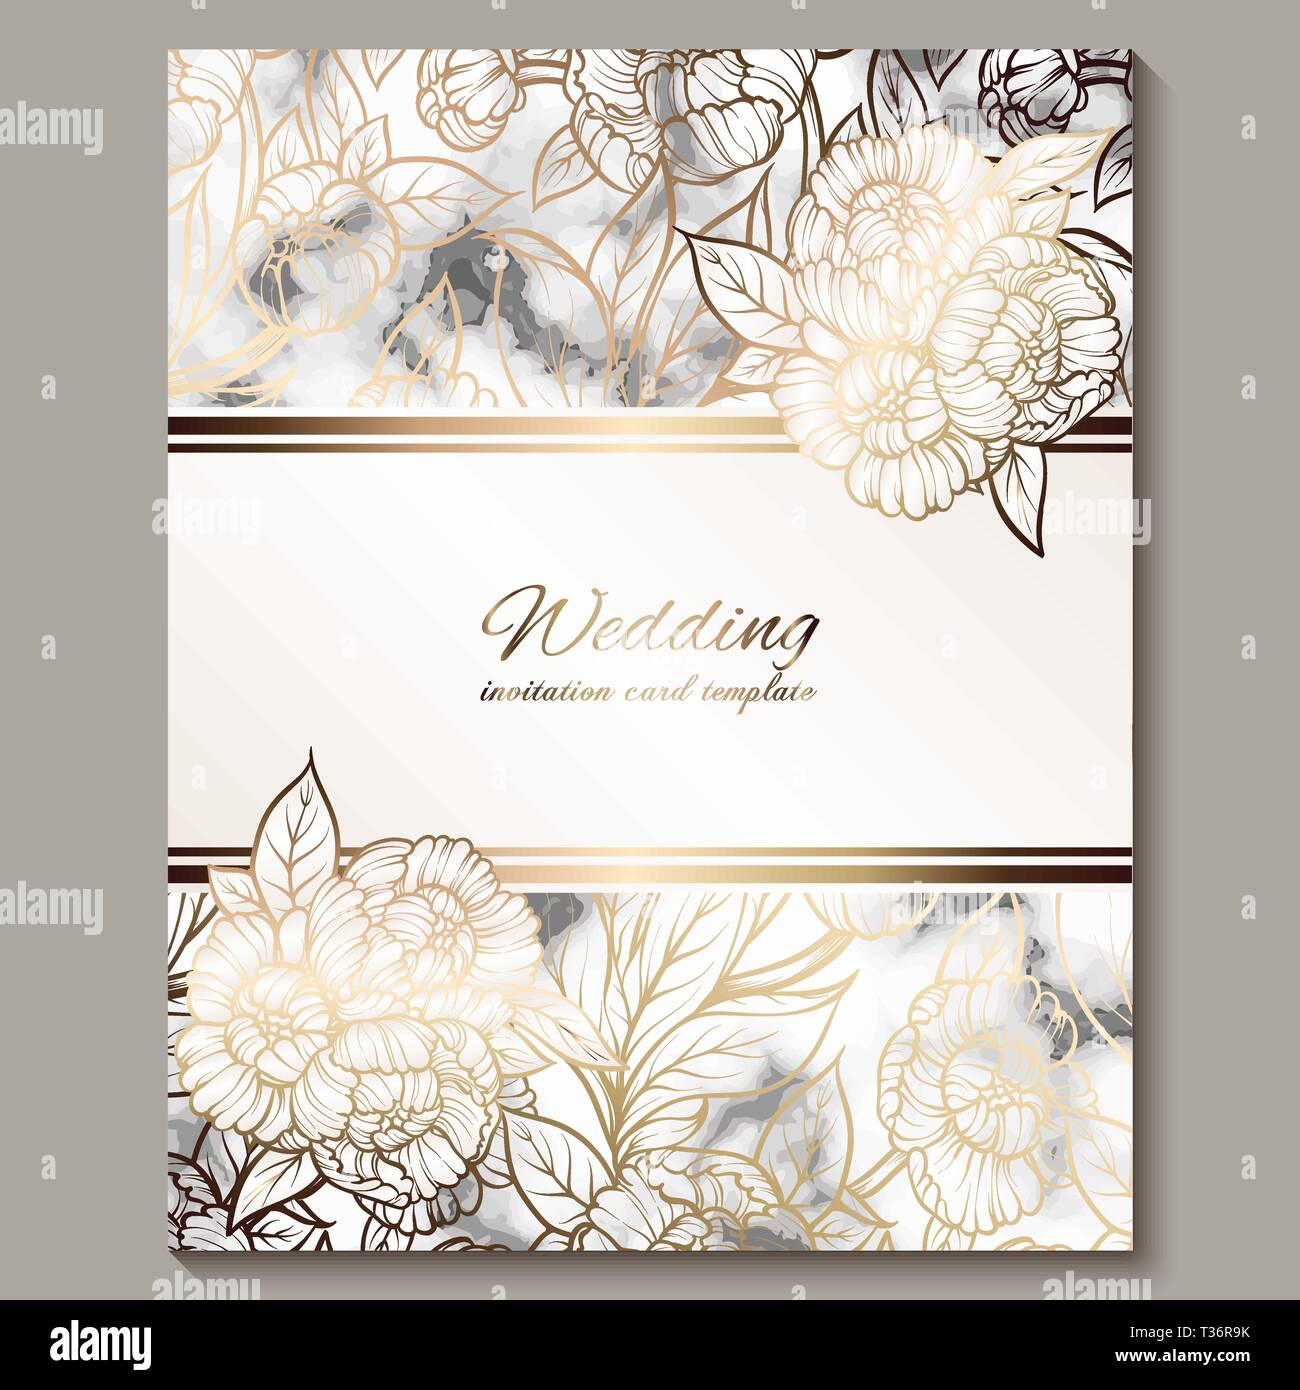 https www alamy com luxury and elegant wedding invitation cards with marble texture and gold glitter background modern wedding invitation decorated with peony flowers image242939135 html